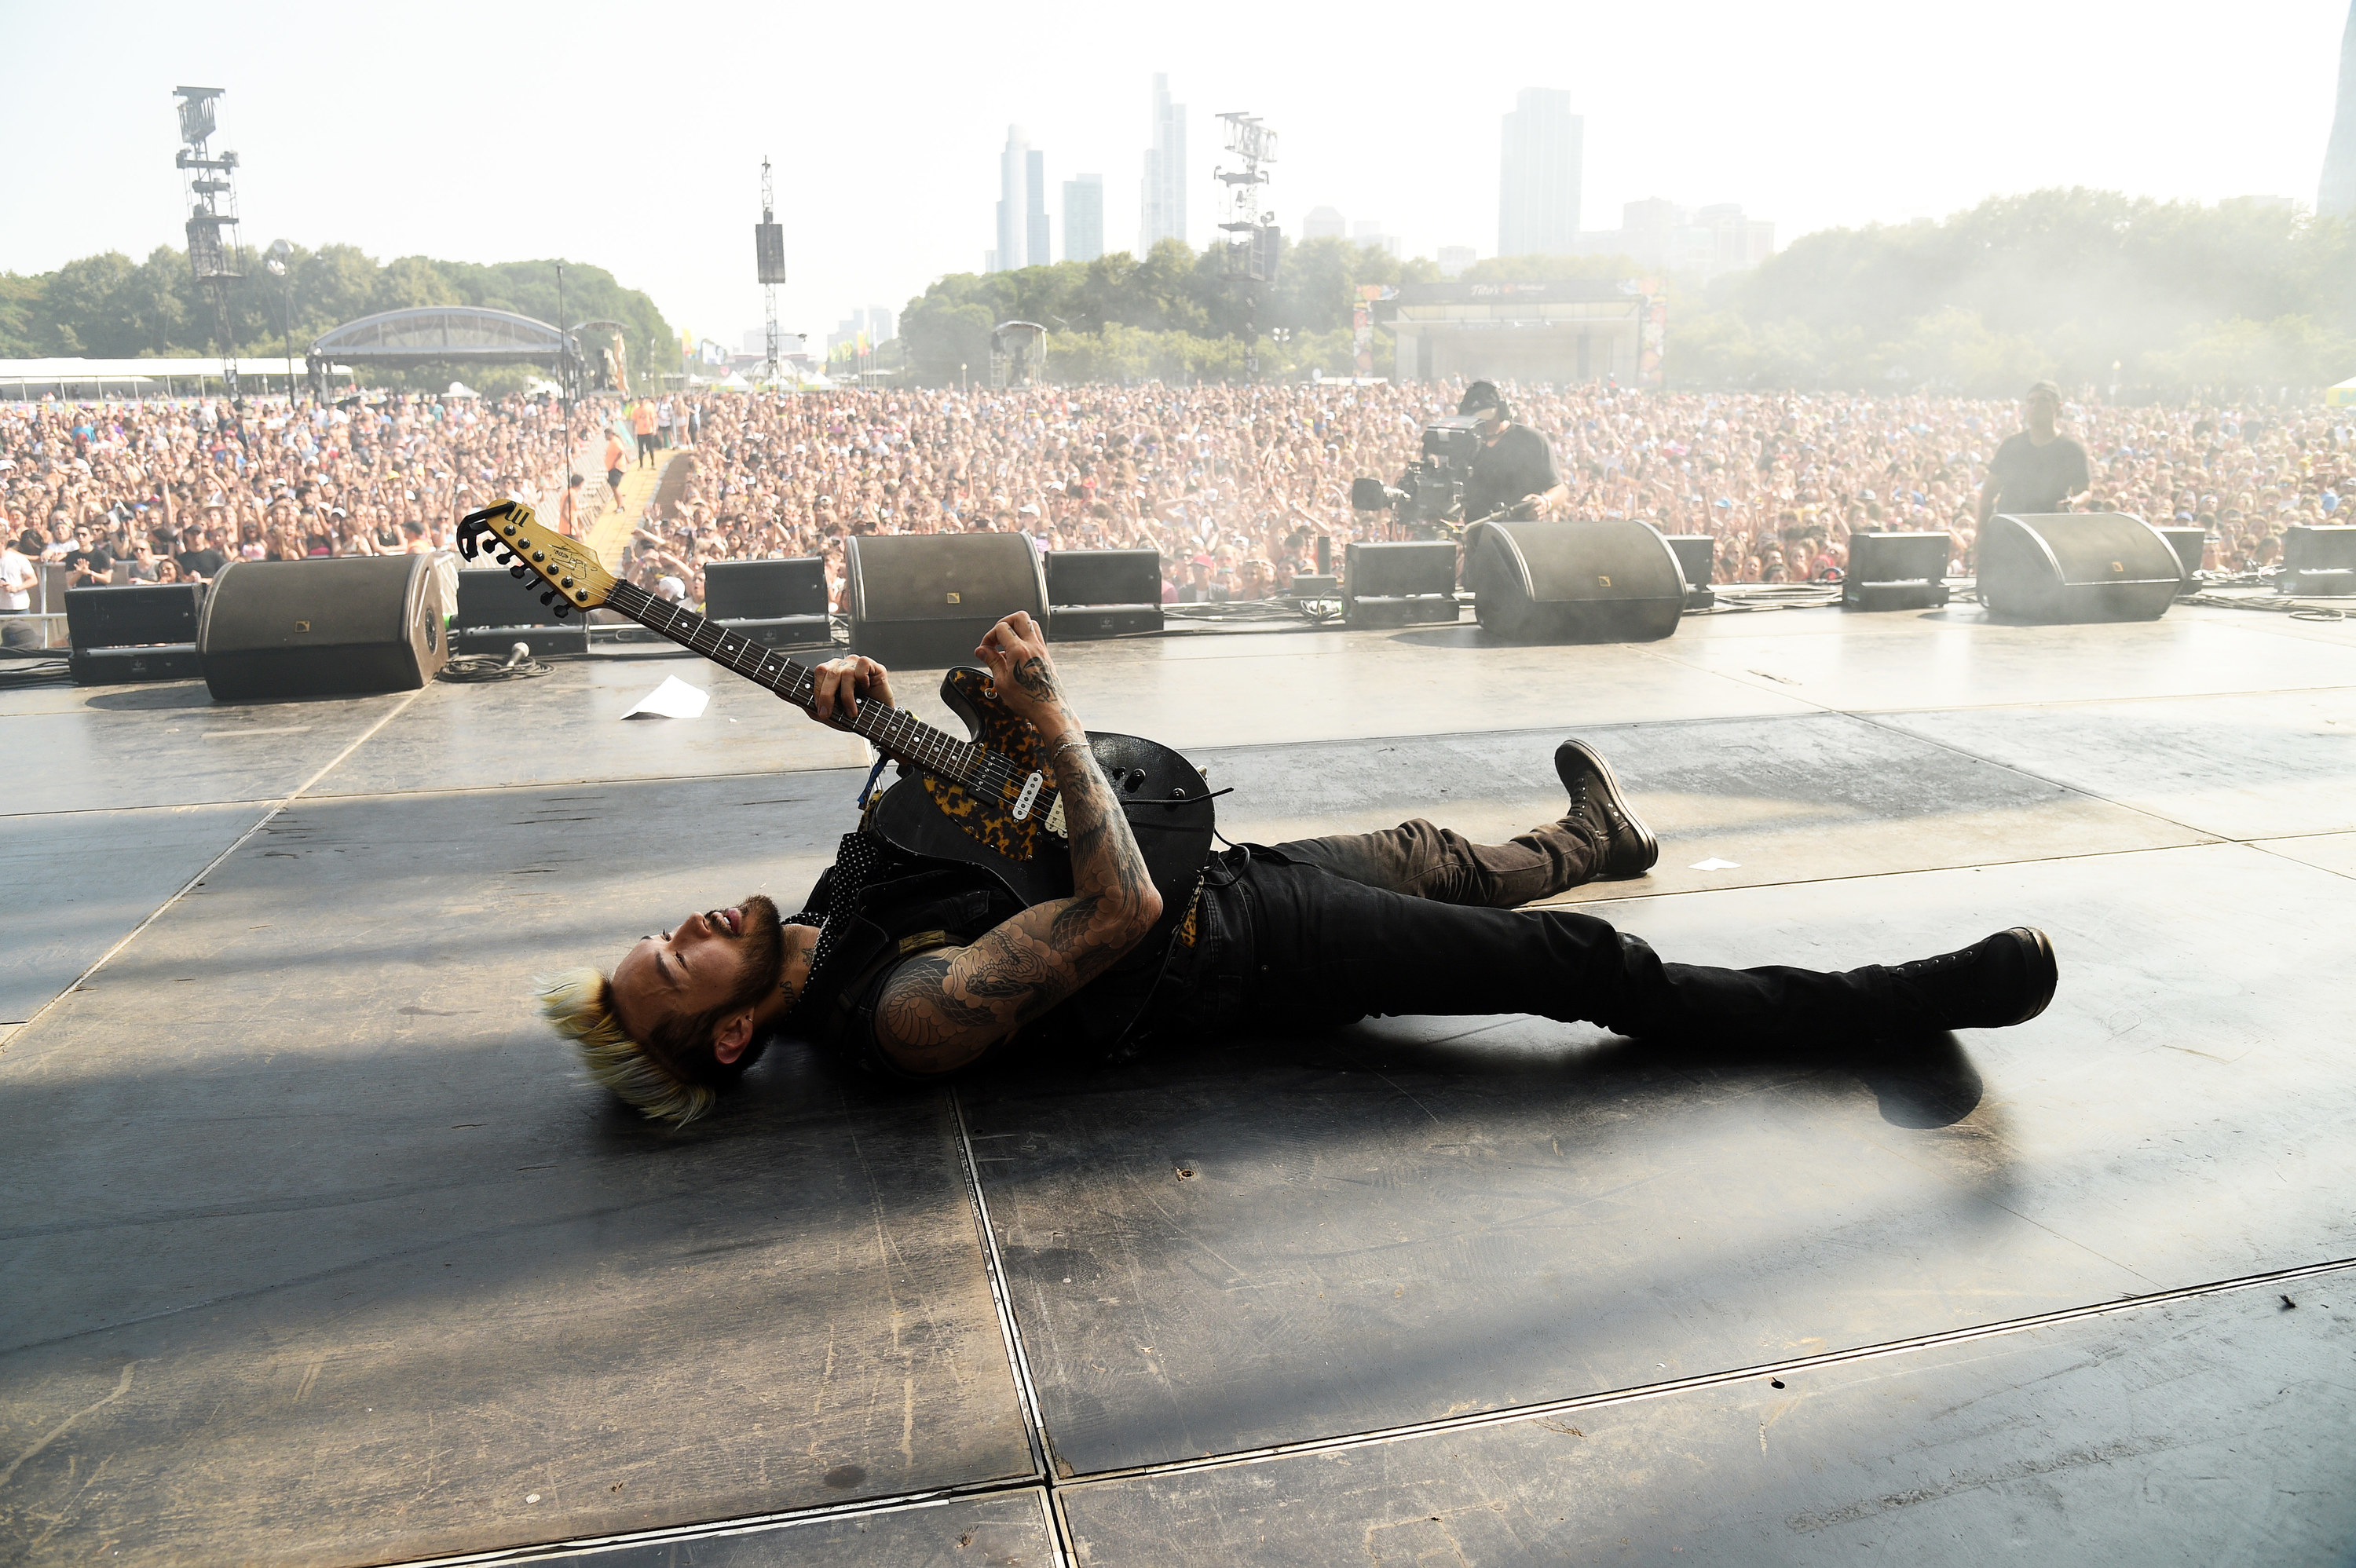 A musician is seen laying on stage holding a guitar as the crowd of thousands is seen in the background at Lollapalooza.